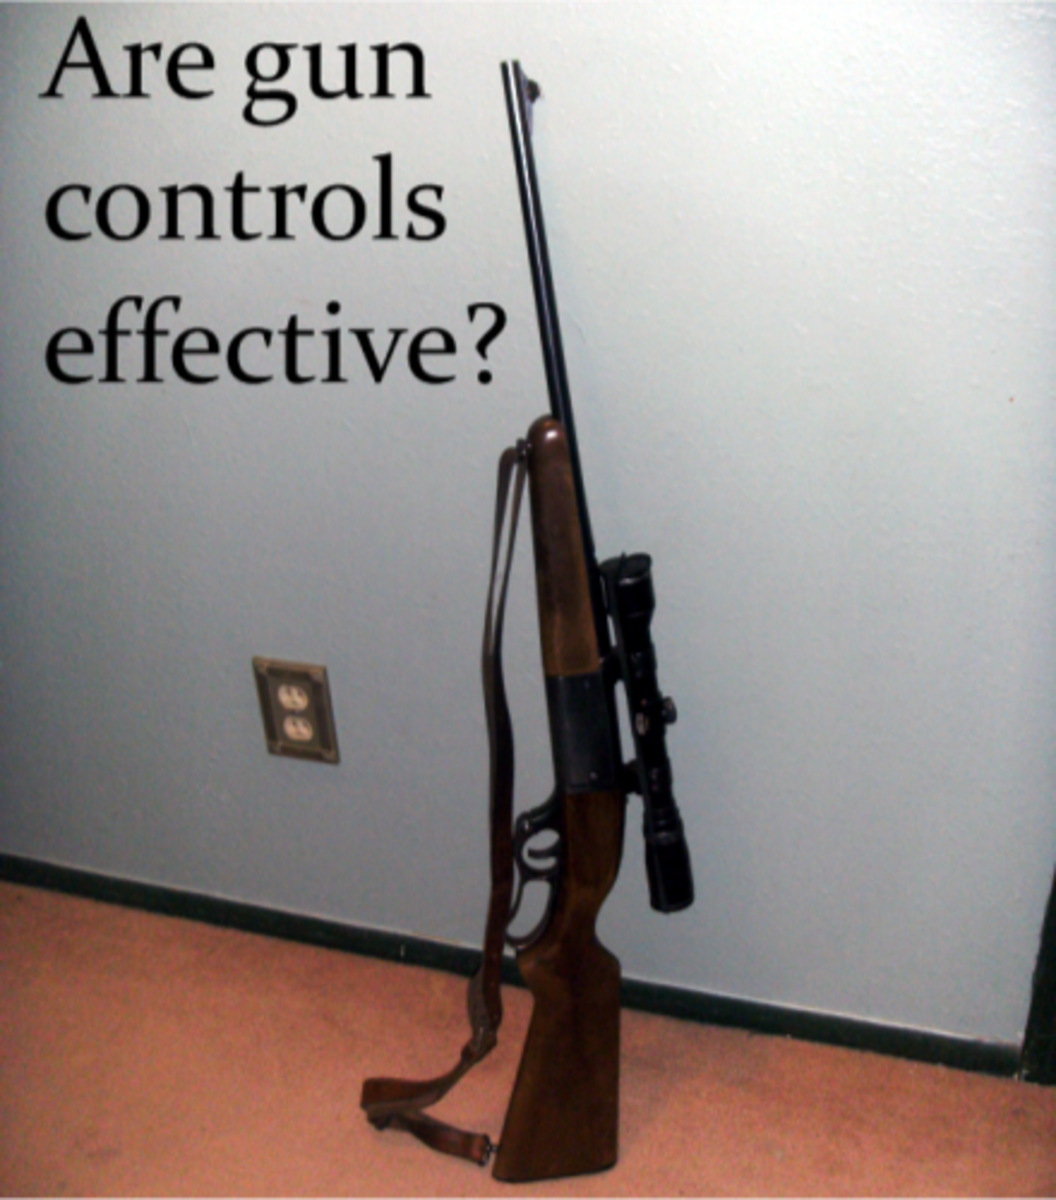 does gun control reduce crime The washington post's viral anti–gun control piece gets a lot wrong  drops in  mass shootings or other gun related-crime that could be attributed to  other  than gun control does, at least to some extent, reduce gun deaths.